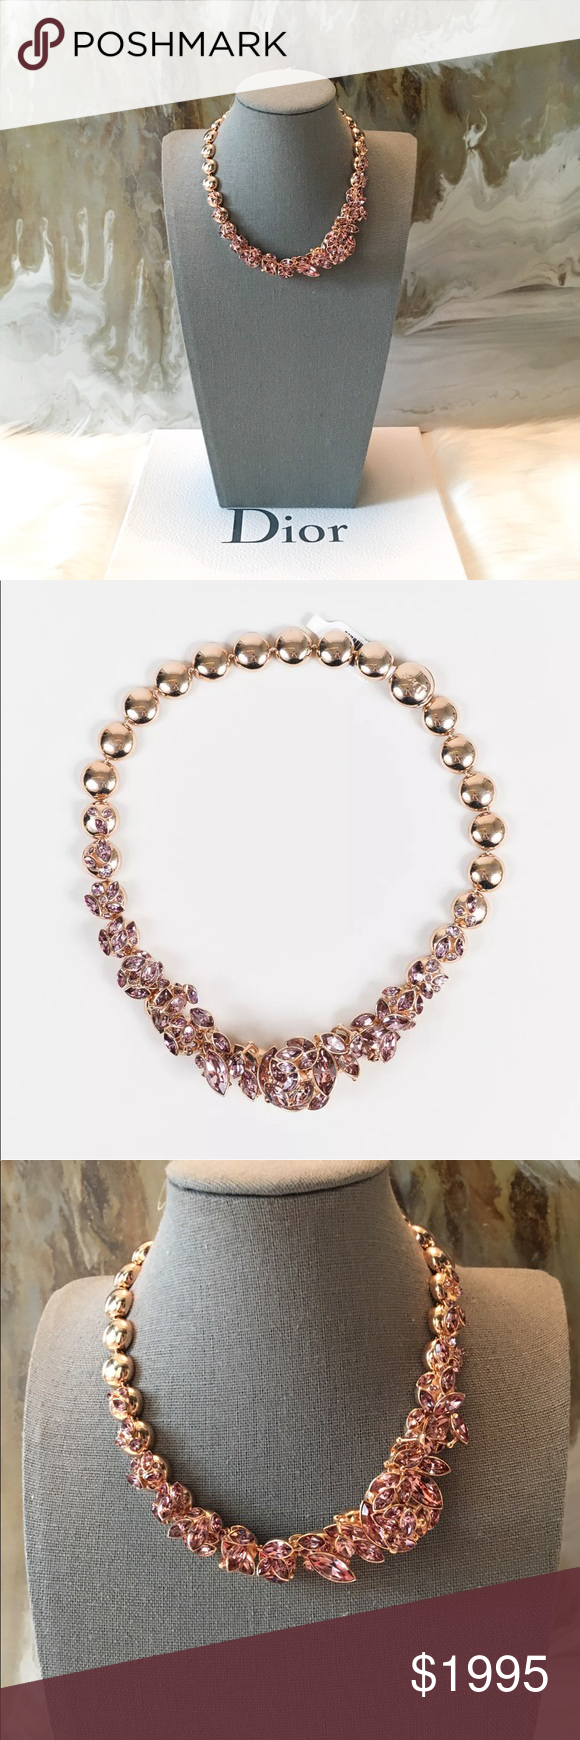 $2300 Dior Pink Crystal Flower Gold Necklace